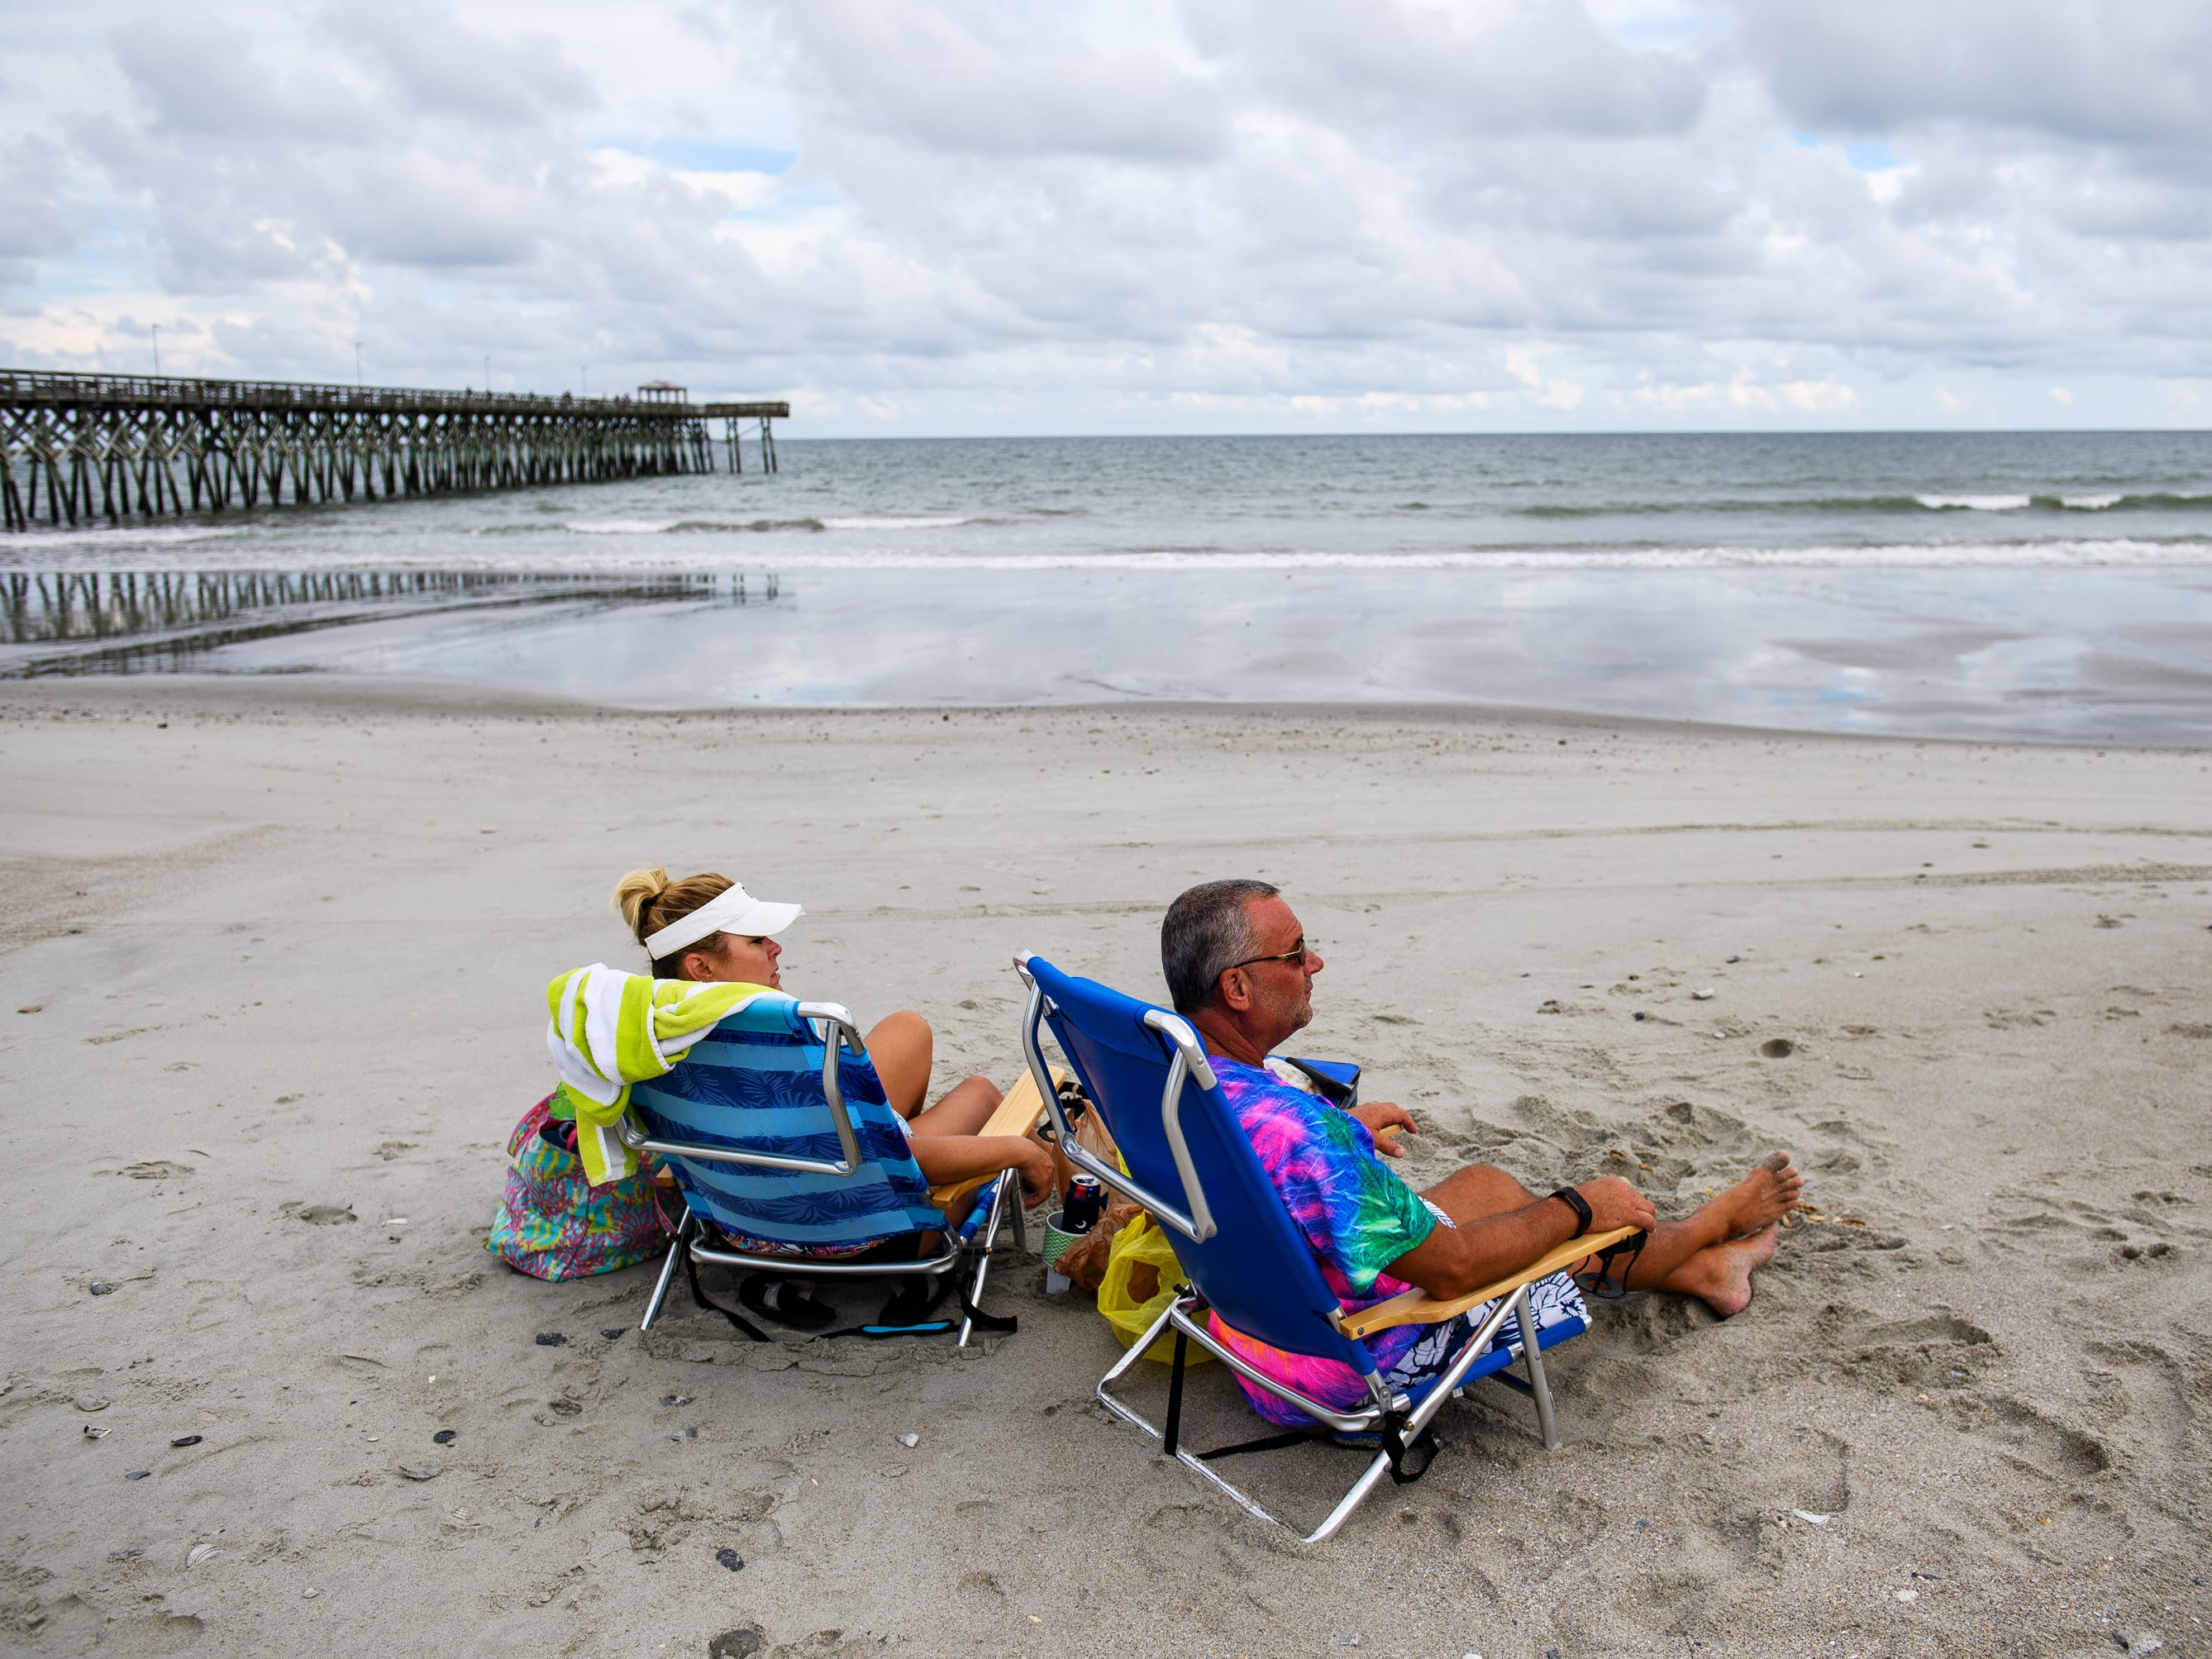 Glenn Hughey and his wife Mary enjoy a nearly vacant beach at Myrtle Beach on Tuesday, Sept. 11, 2018, days before Hurricane Florence is expected to hit coastal areas in South and North Carolina. Hughey said they live just outside of the mandatory evacuation area in Myrtle Beach and will ride out the storm.